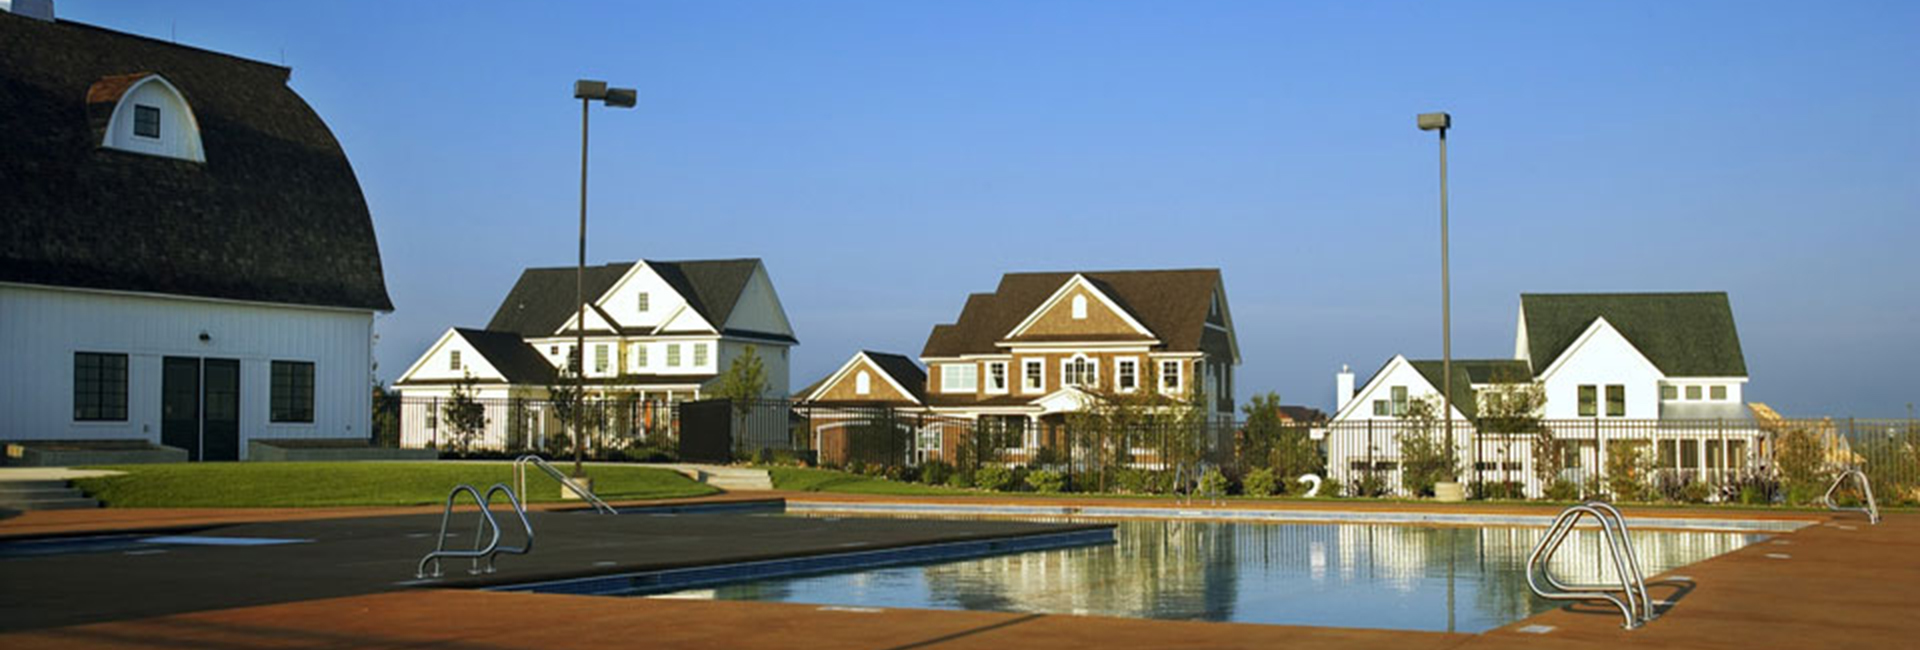 Model homes in lakeville mn